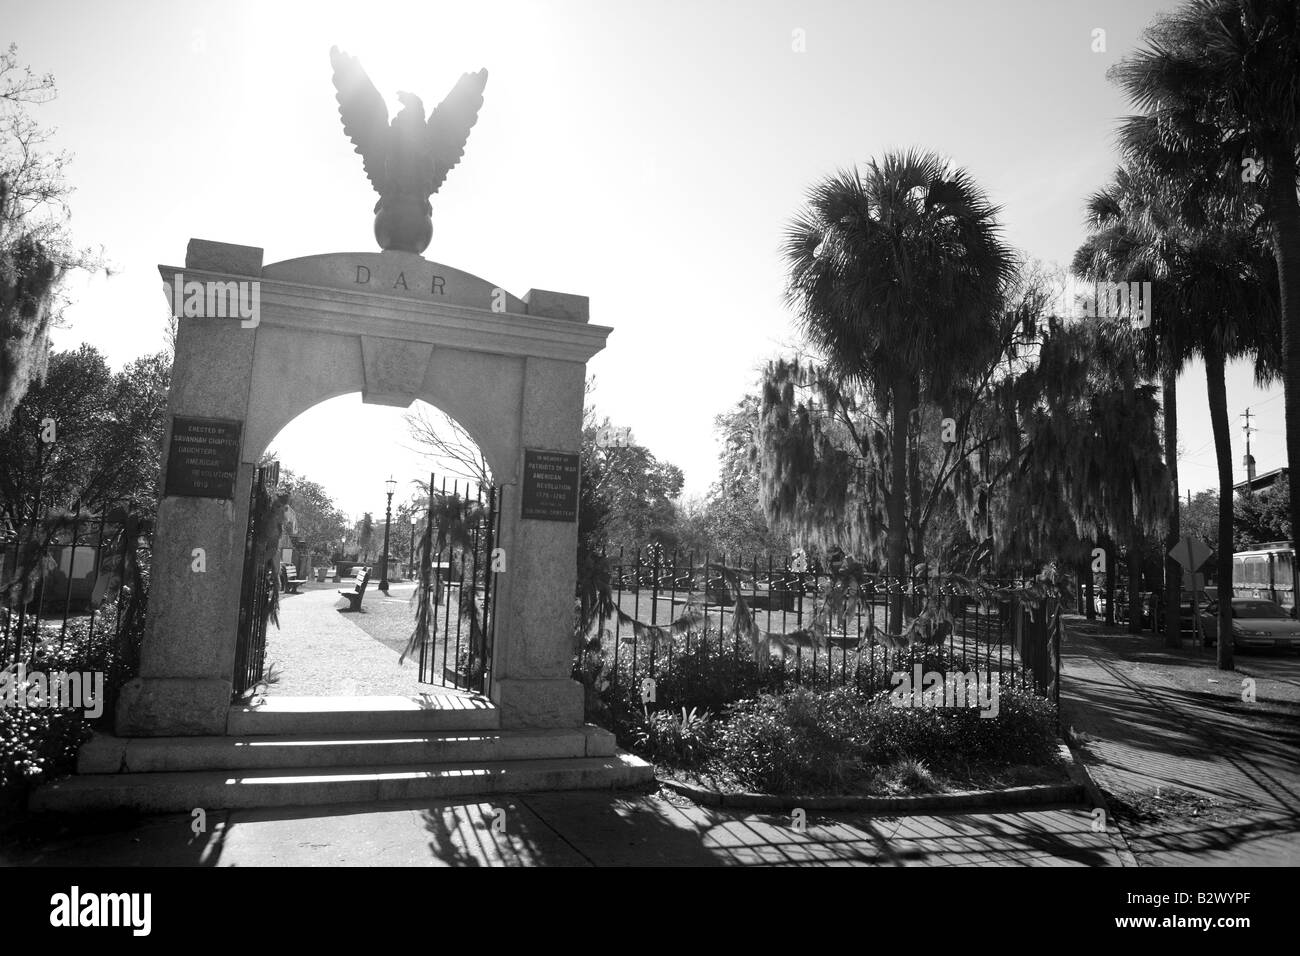 ENTRANCE TO THE COLONIAL PARK CEMETERY IN THE HISTORIC PART OF SAVANNAH GEORGIA USA - Stock Image